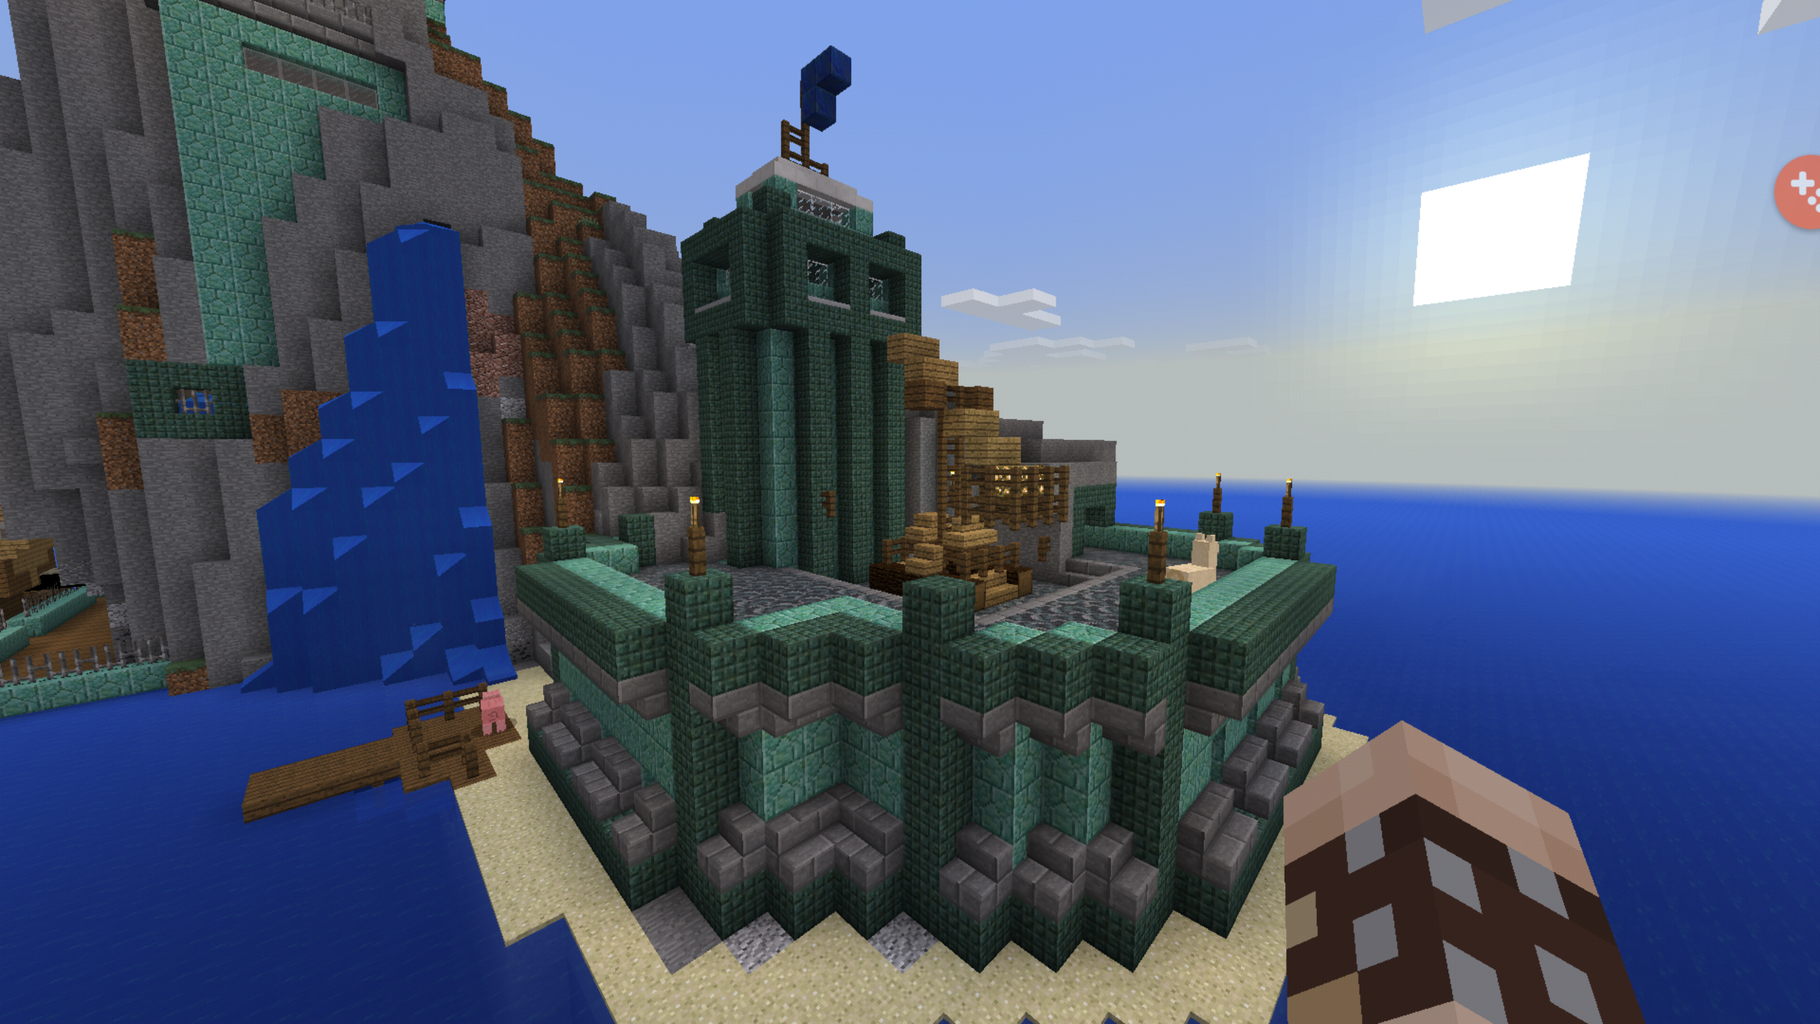 The Tower on the Island...